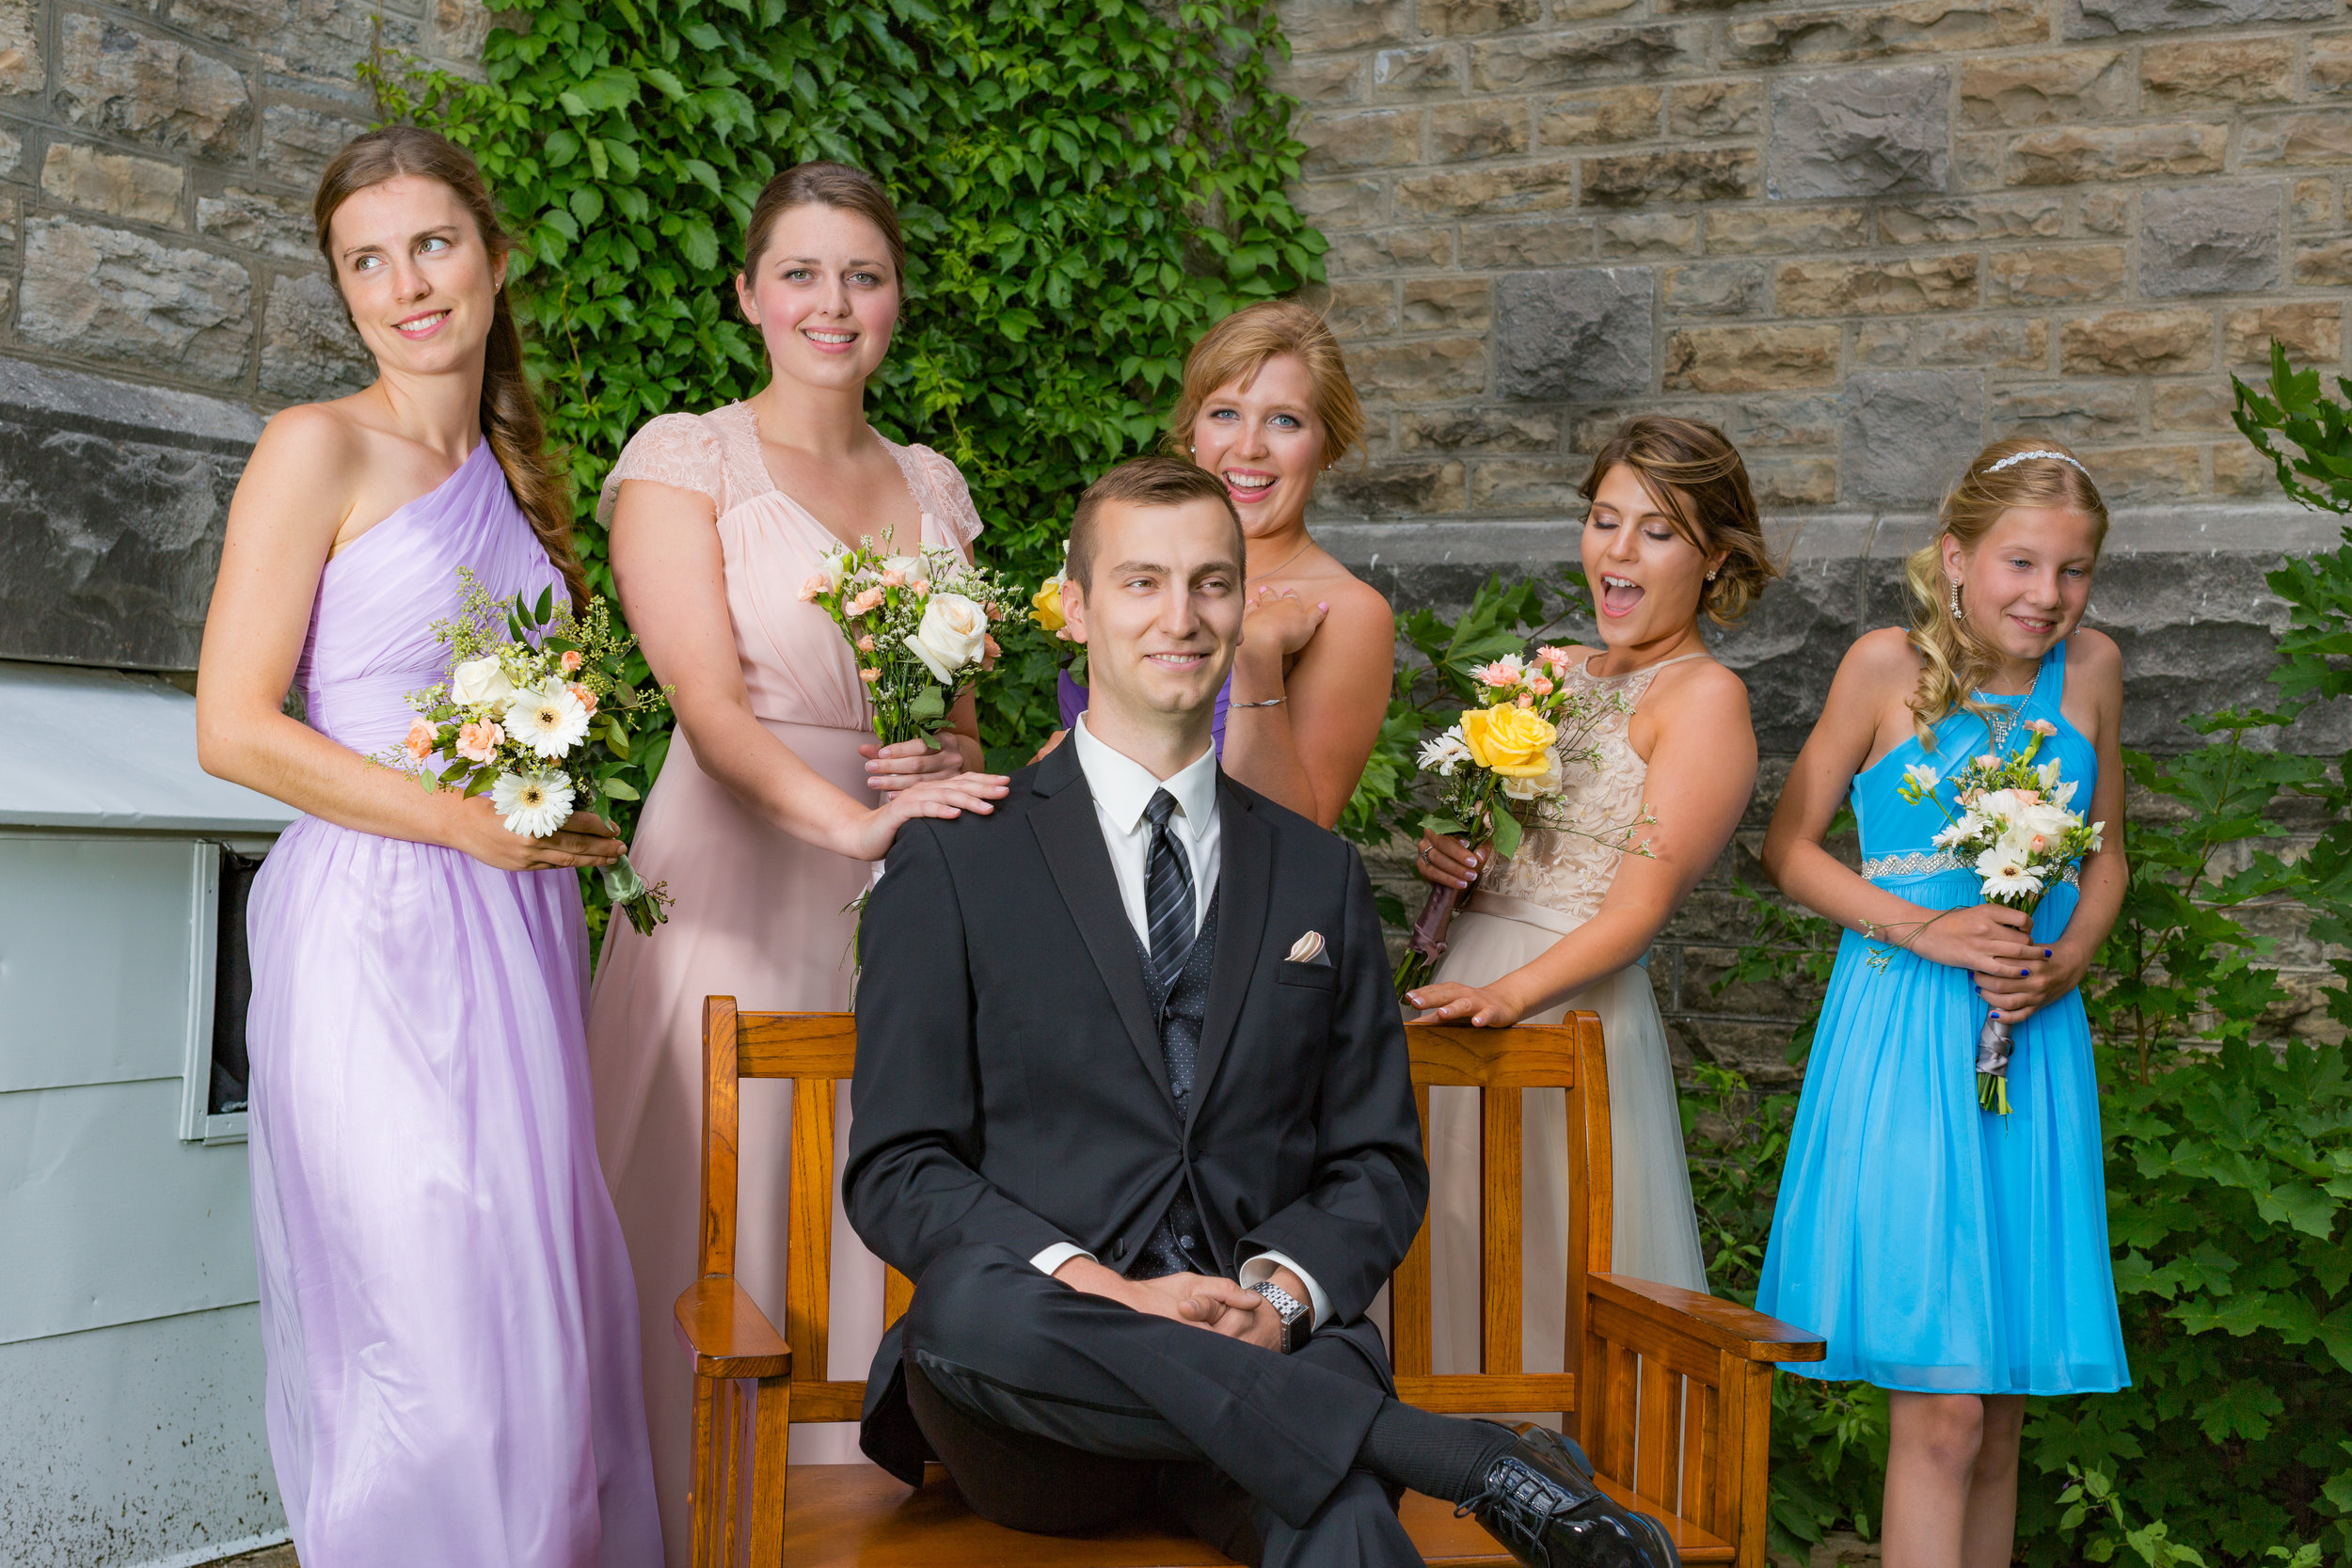 02 Jul '16 - JT.Foulds©2016 - Pembroke, ON -  https://500px.com/JT_Foulds/galleries/halo-jean-wedding